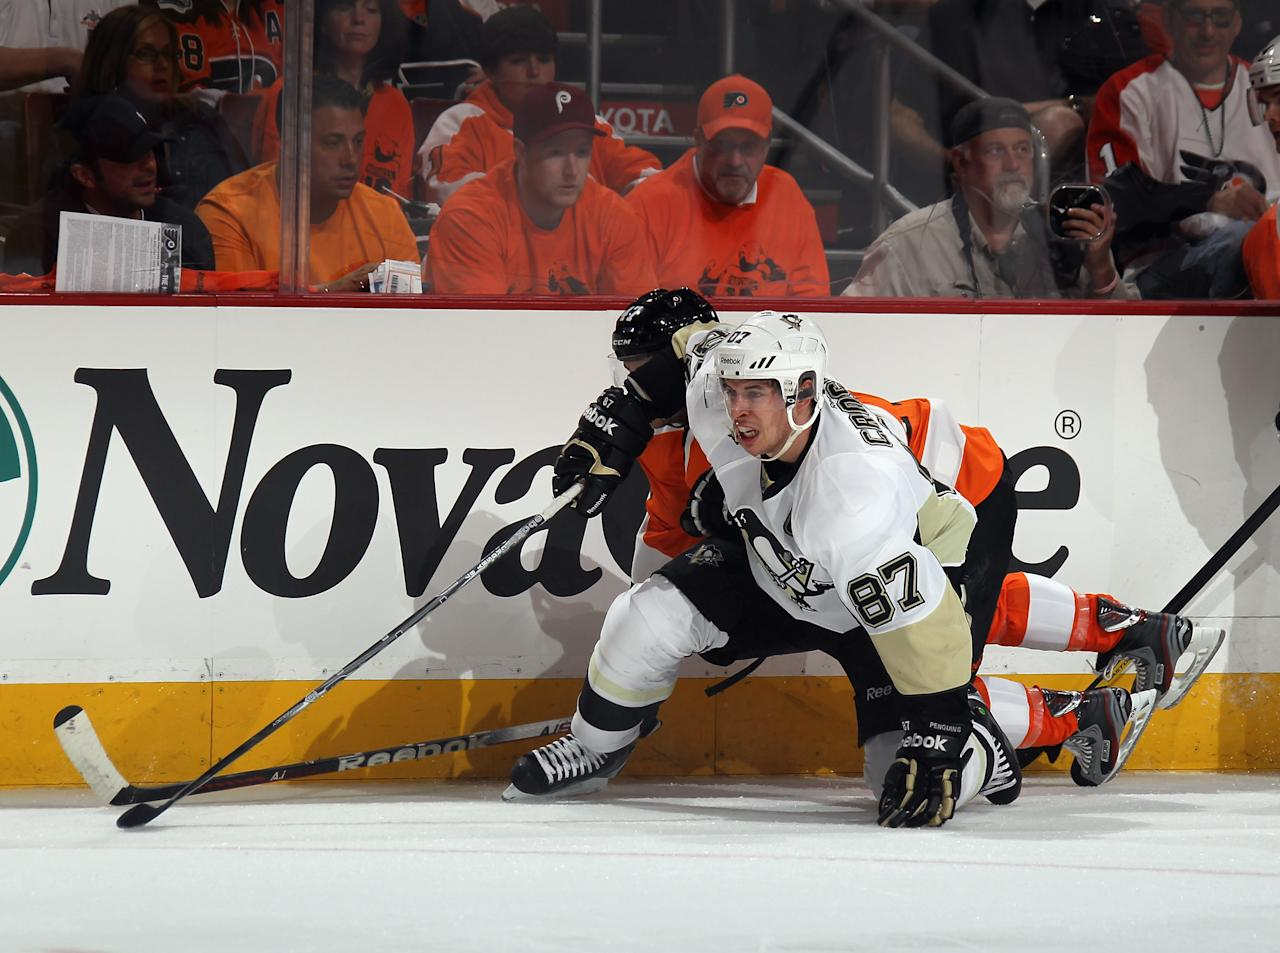 PHILADELPHIA, PA - APRIL 15: Sidney Crosby #87 of the Pittsburgh PBenguins attles to control the puck in the game against the Philadelphia Flyers in Game Three of the Eastern Conference Quarterfinals during the 2012 NHL Stanley Cup Playoffs at Wells Fargo Center on April 15, 2012 in Philadelphia, Pennsylvania. The Flyers defeated the Penguins 8-4. (Photo by Bruce Bennett/Getty Images)